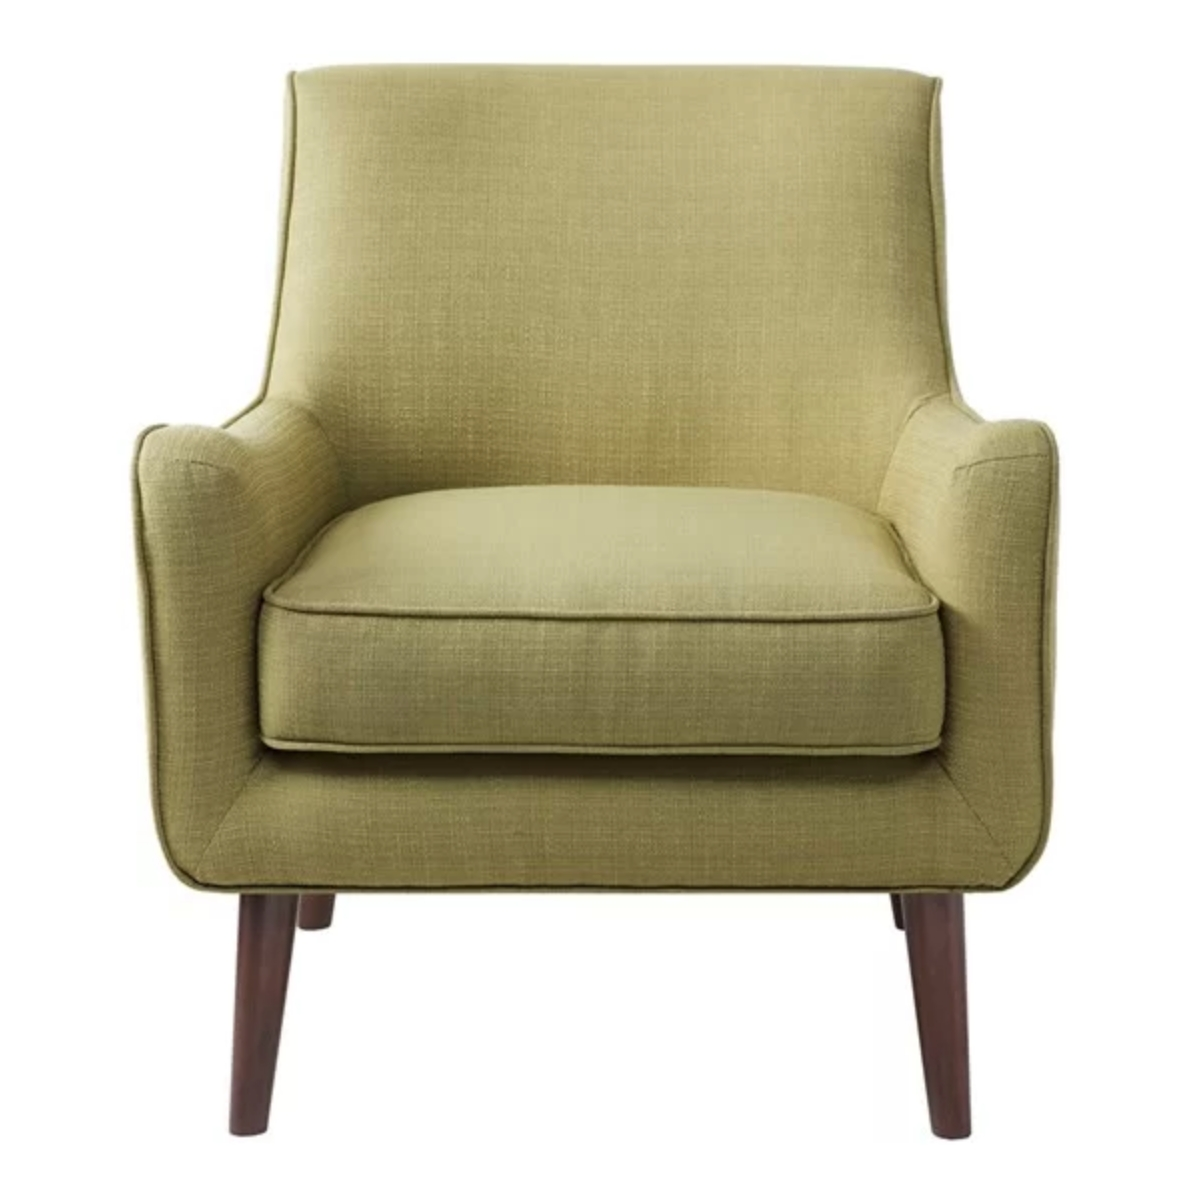 22 Best Accent Chairs For Living Room – Chic Upholstered Accent Chairs For Famous Market Side Chairs (Gallery 20 of 20)